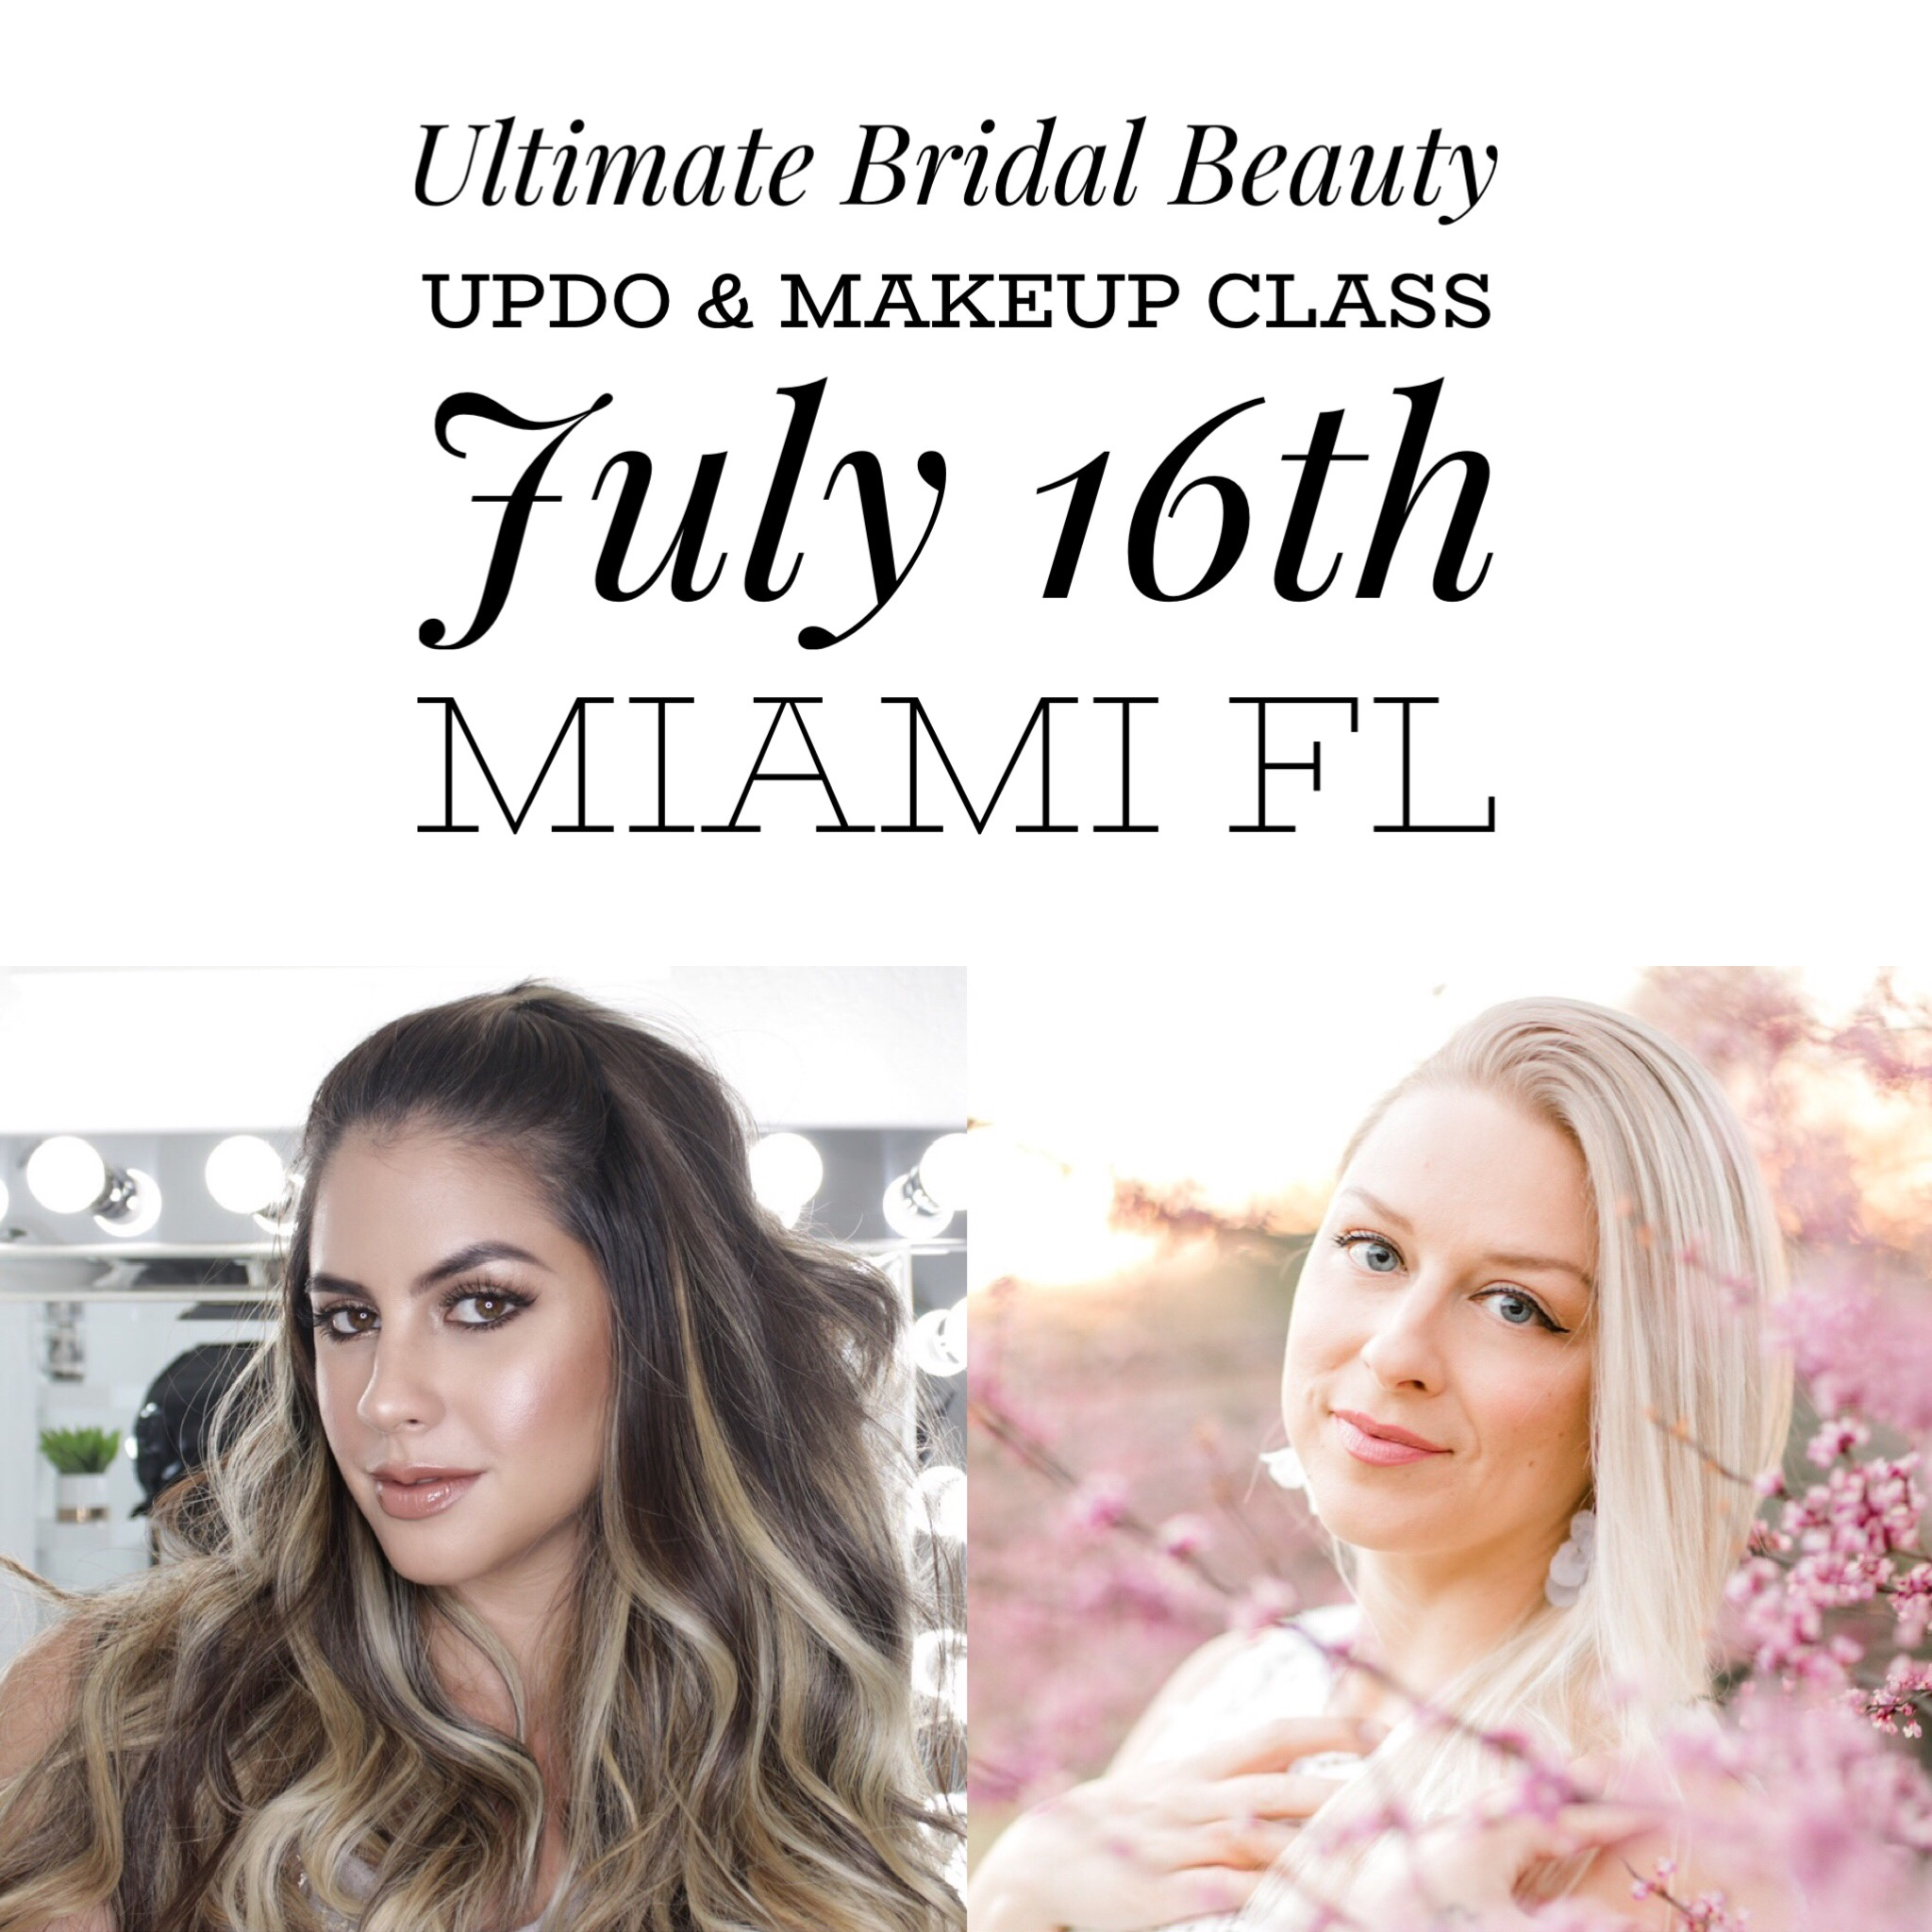 bridal updo makeup class renee marie jess bonilla miami the makeup club